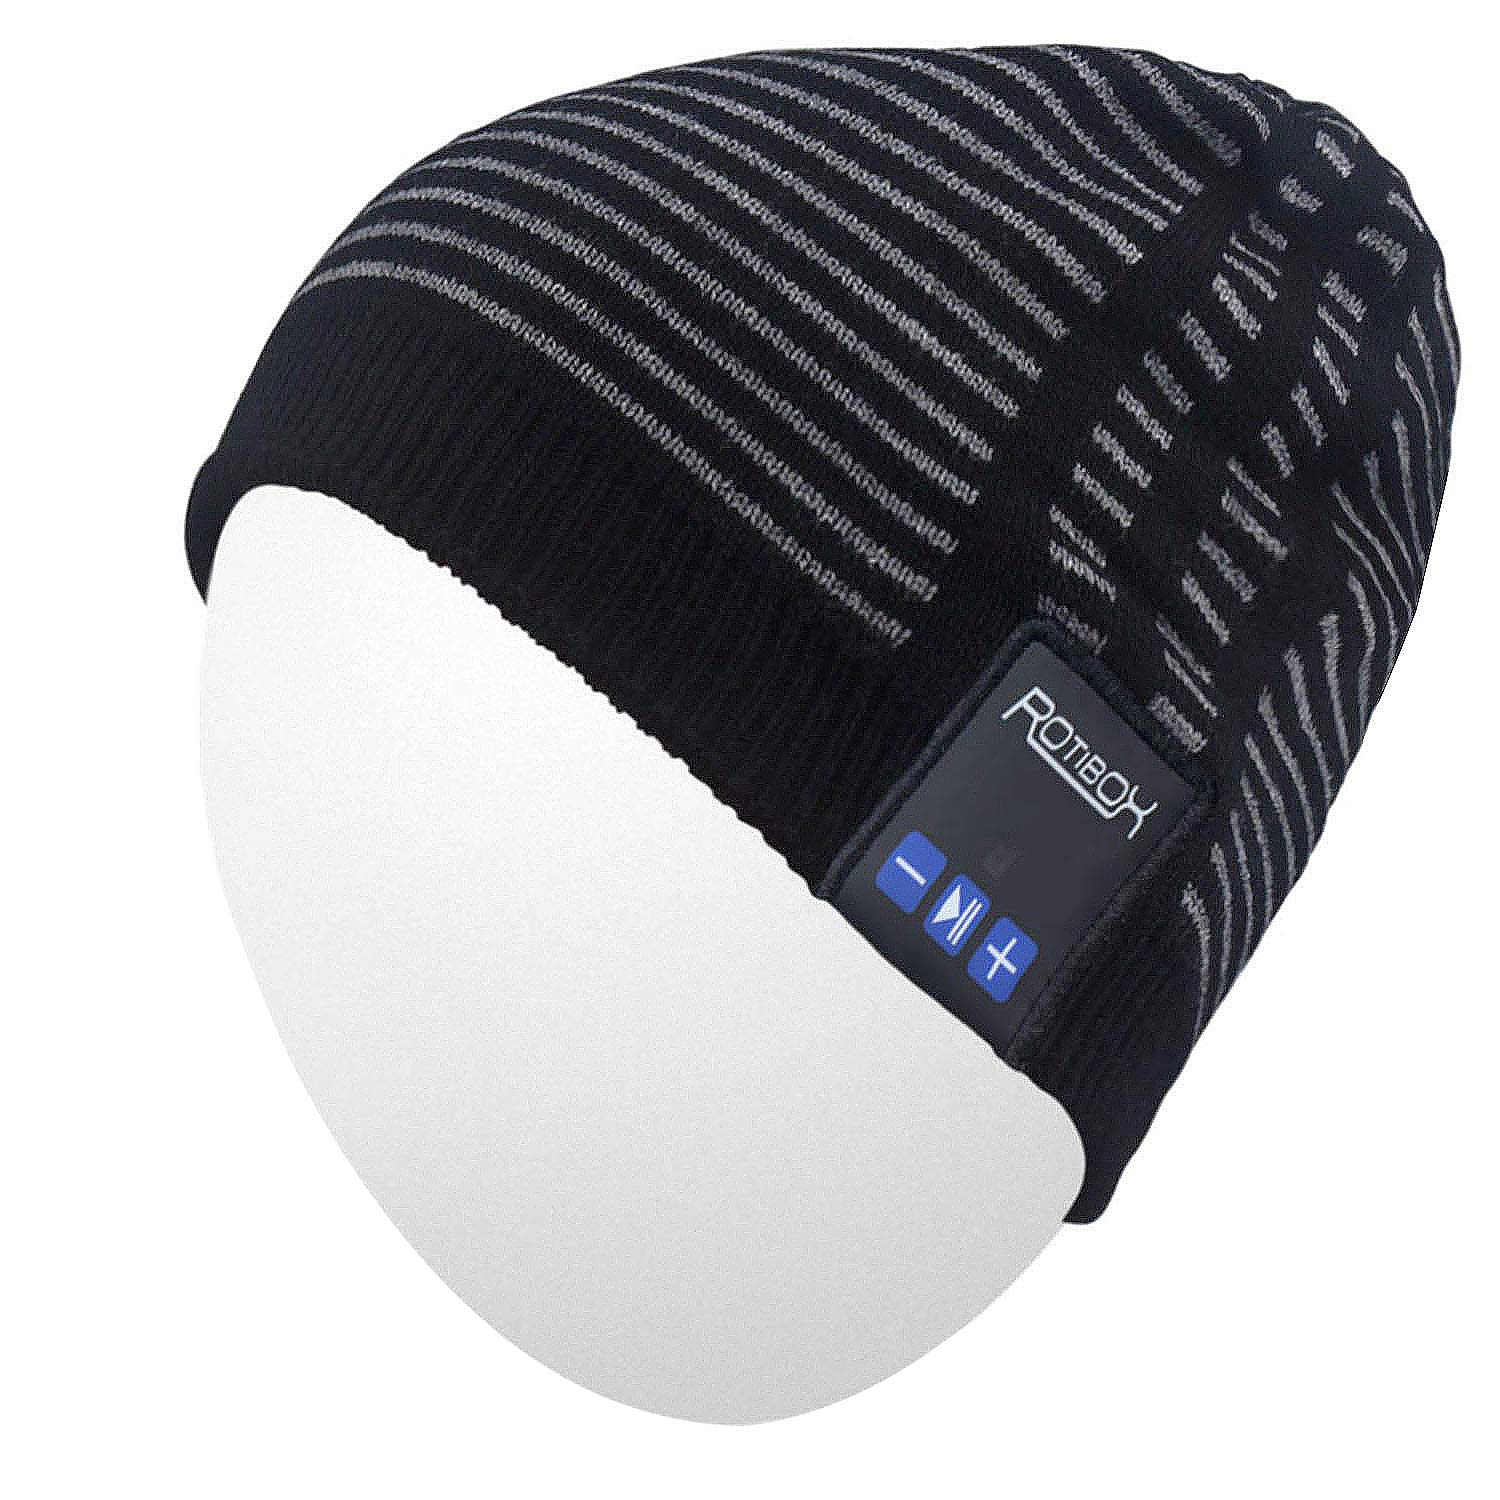 Qshell Trendy Warm Soft Knit Slouchy Music Beanie Skully Hat w/Wireless Stereo Headphones Mic Hands Free Rechargeable Battery for Fitness Outdoor Sports Skiing Running Skating Walking-Black